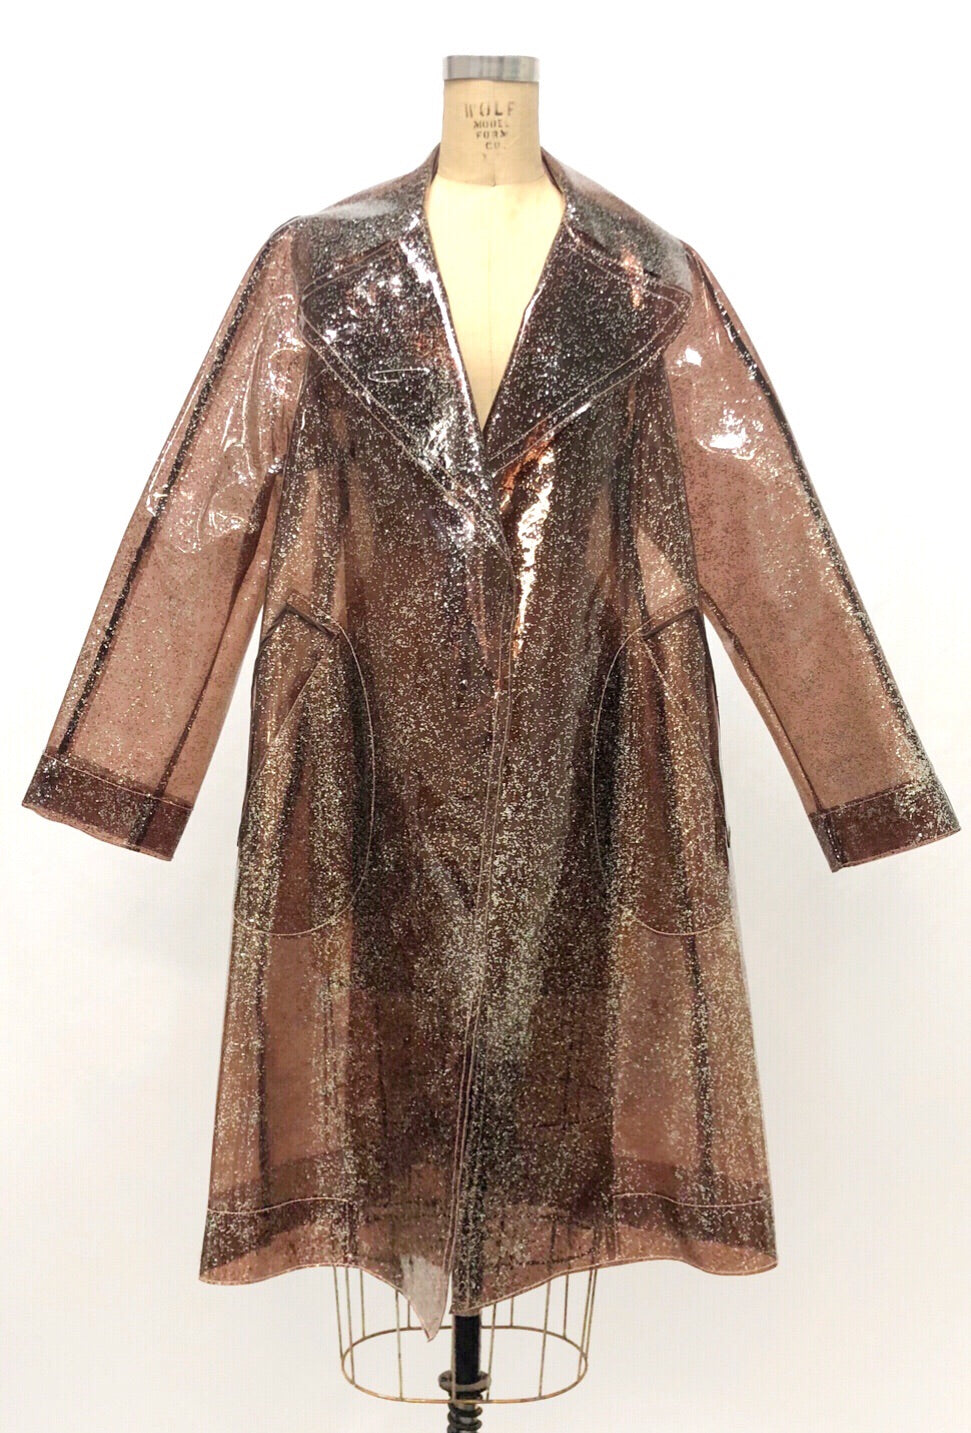 Marc Jacobs 2010 Runway Glitter Raincoat